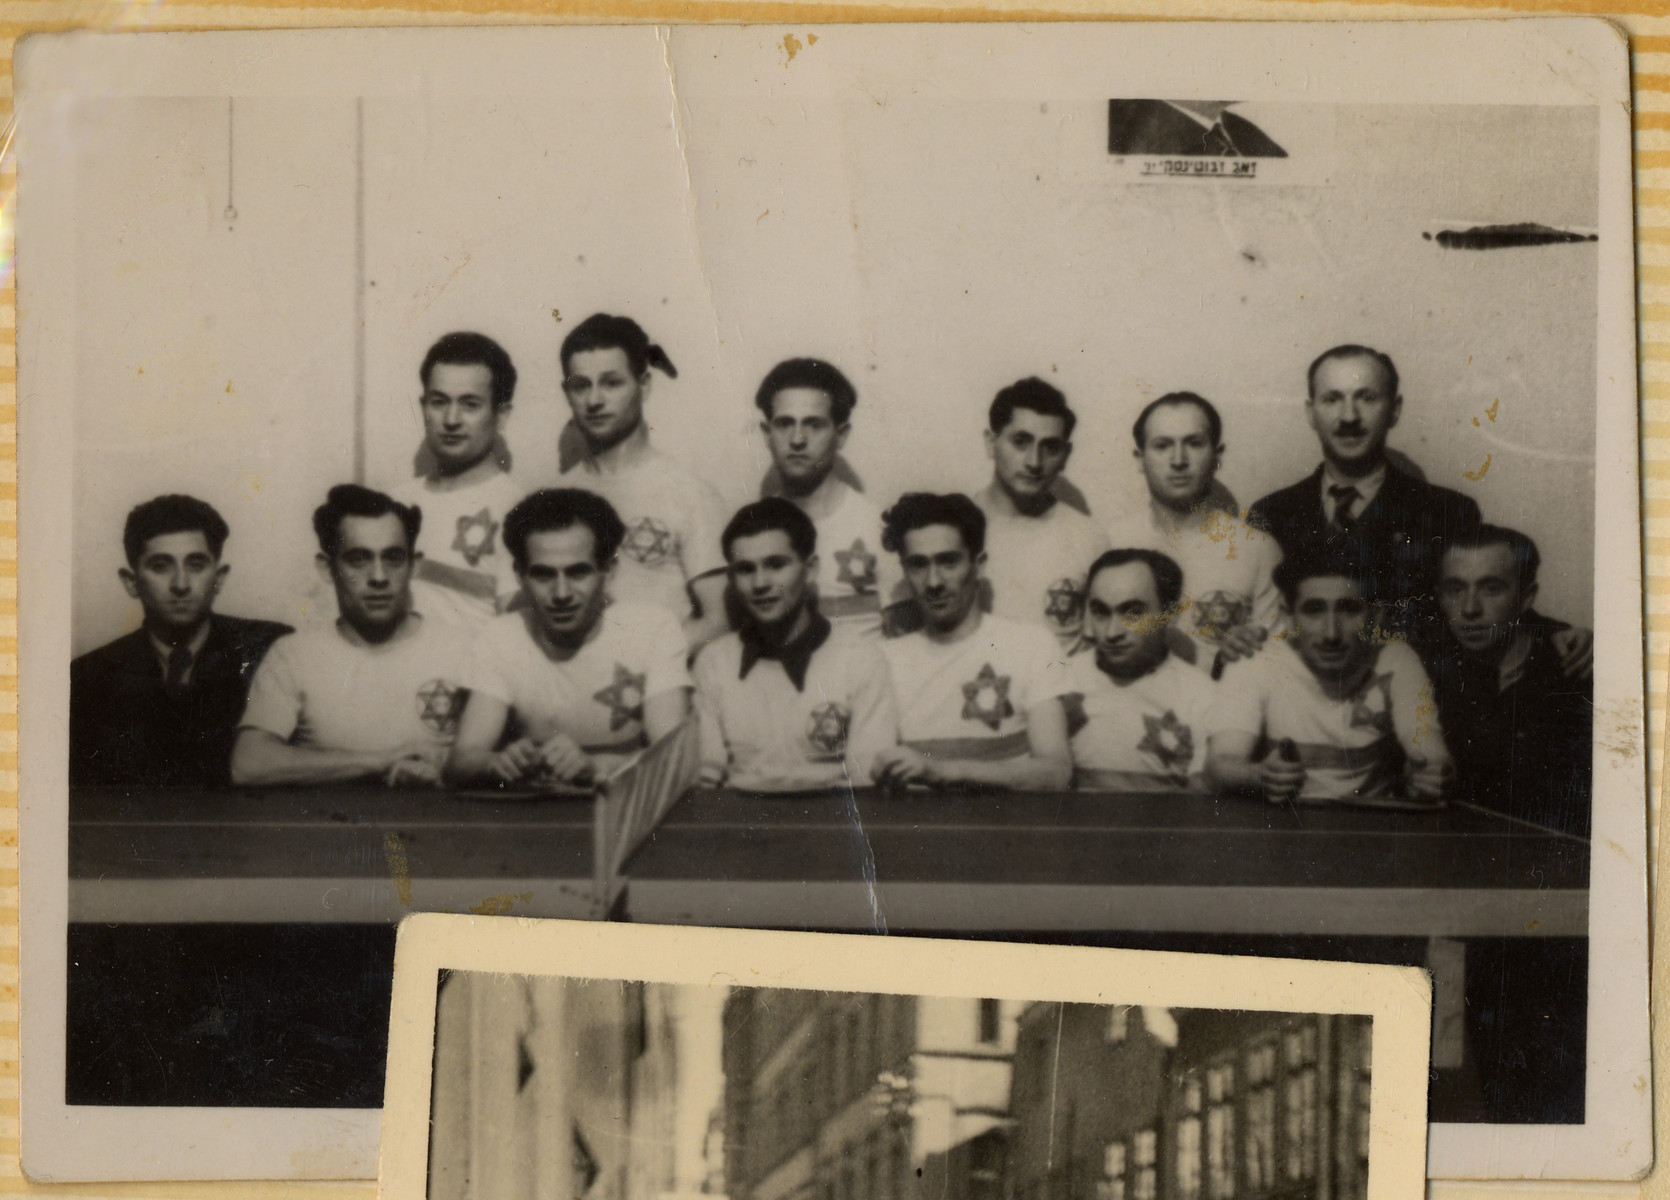 Group portrait of a ping pong team in the Hofgeismar displaced persons camp.